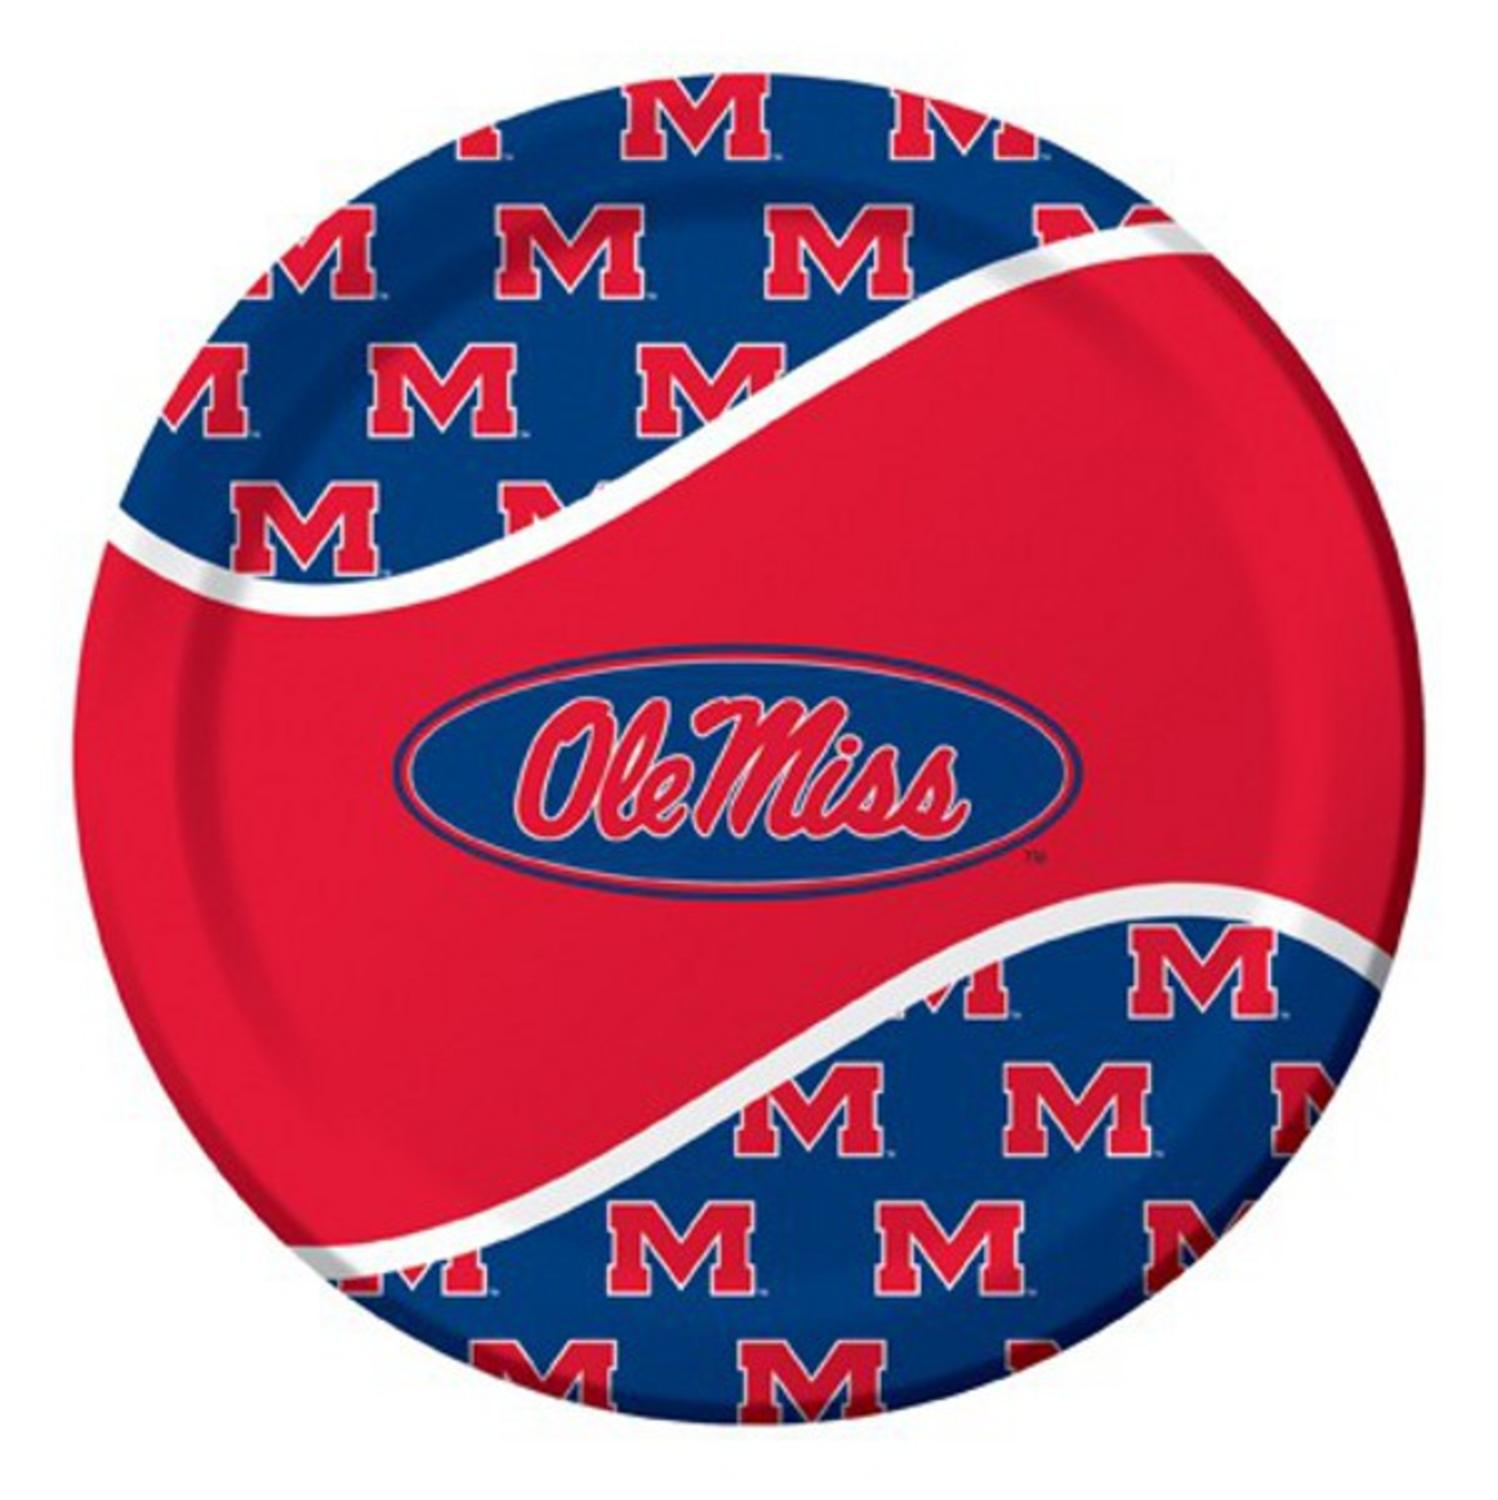 Pack of 96 NCAA Ole Miss Rebels Round Tailgate Party Paper Dinner Plates 8.75""